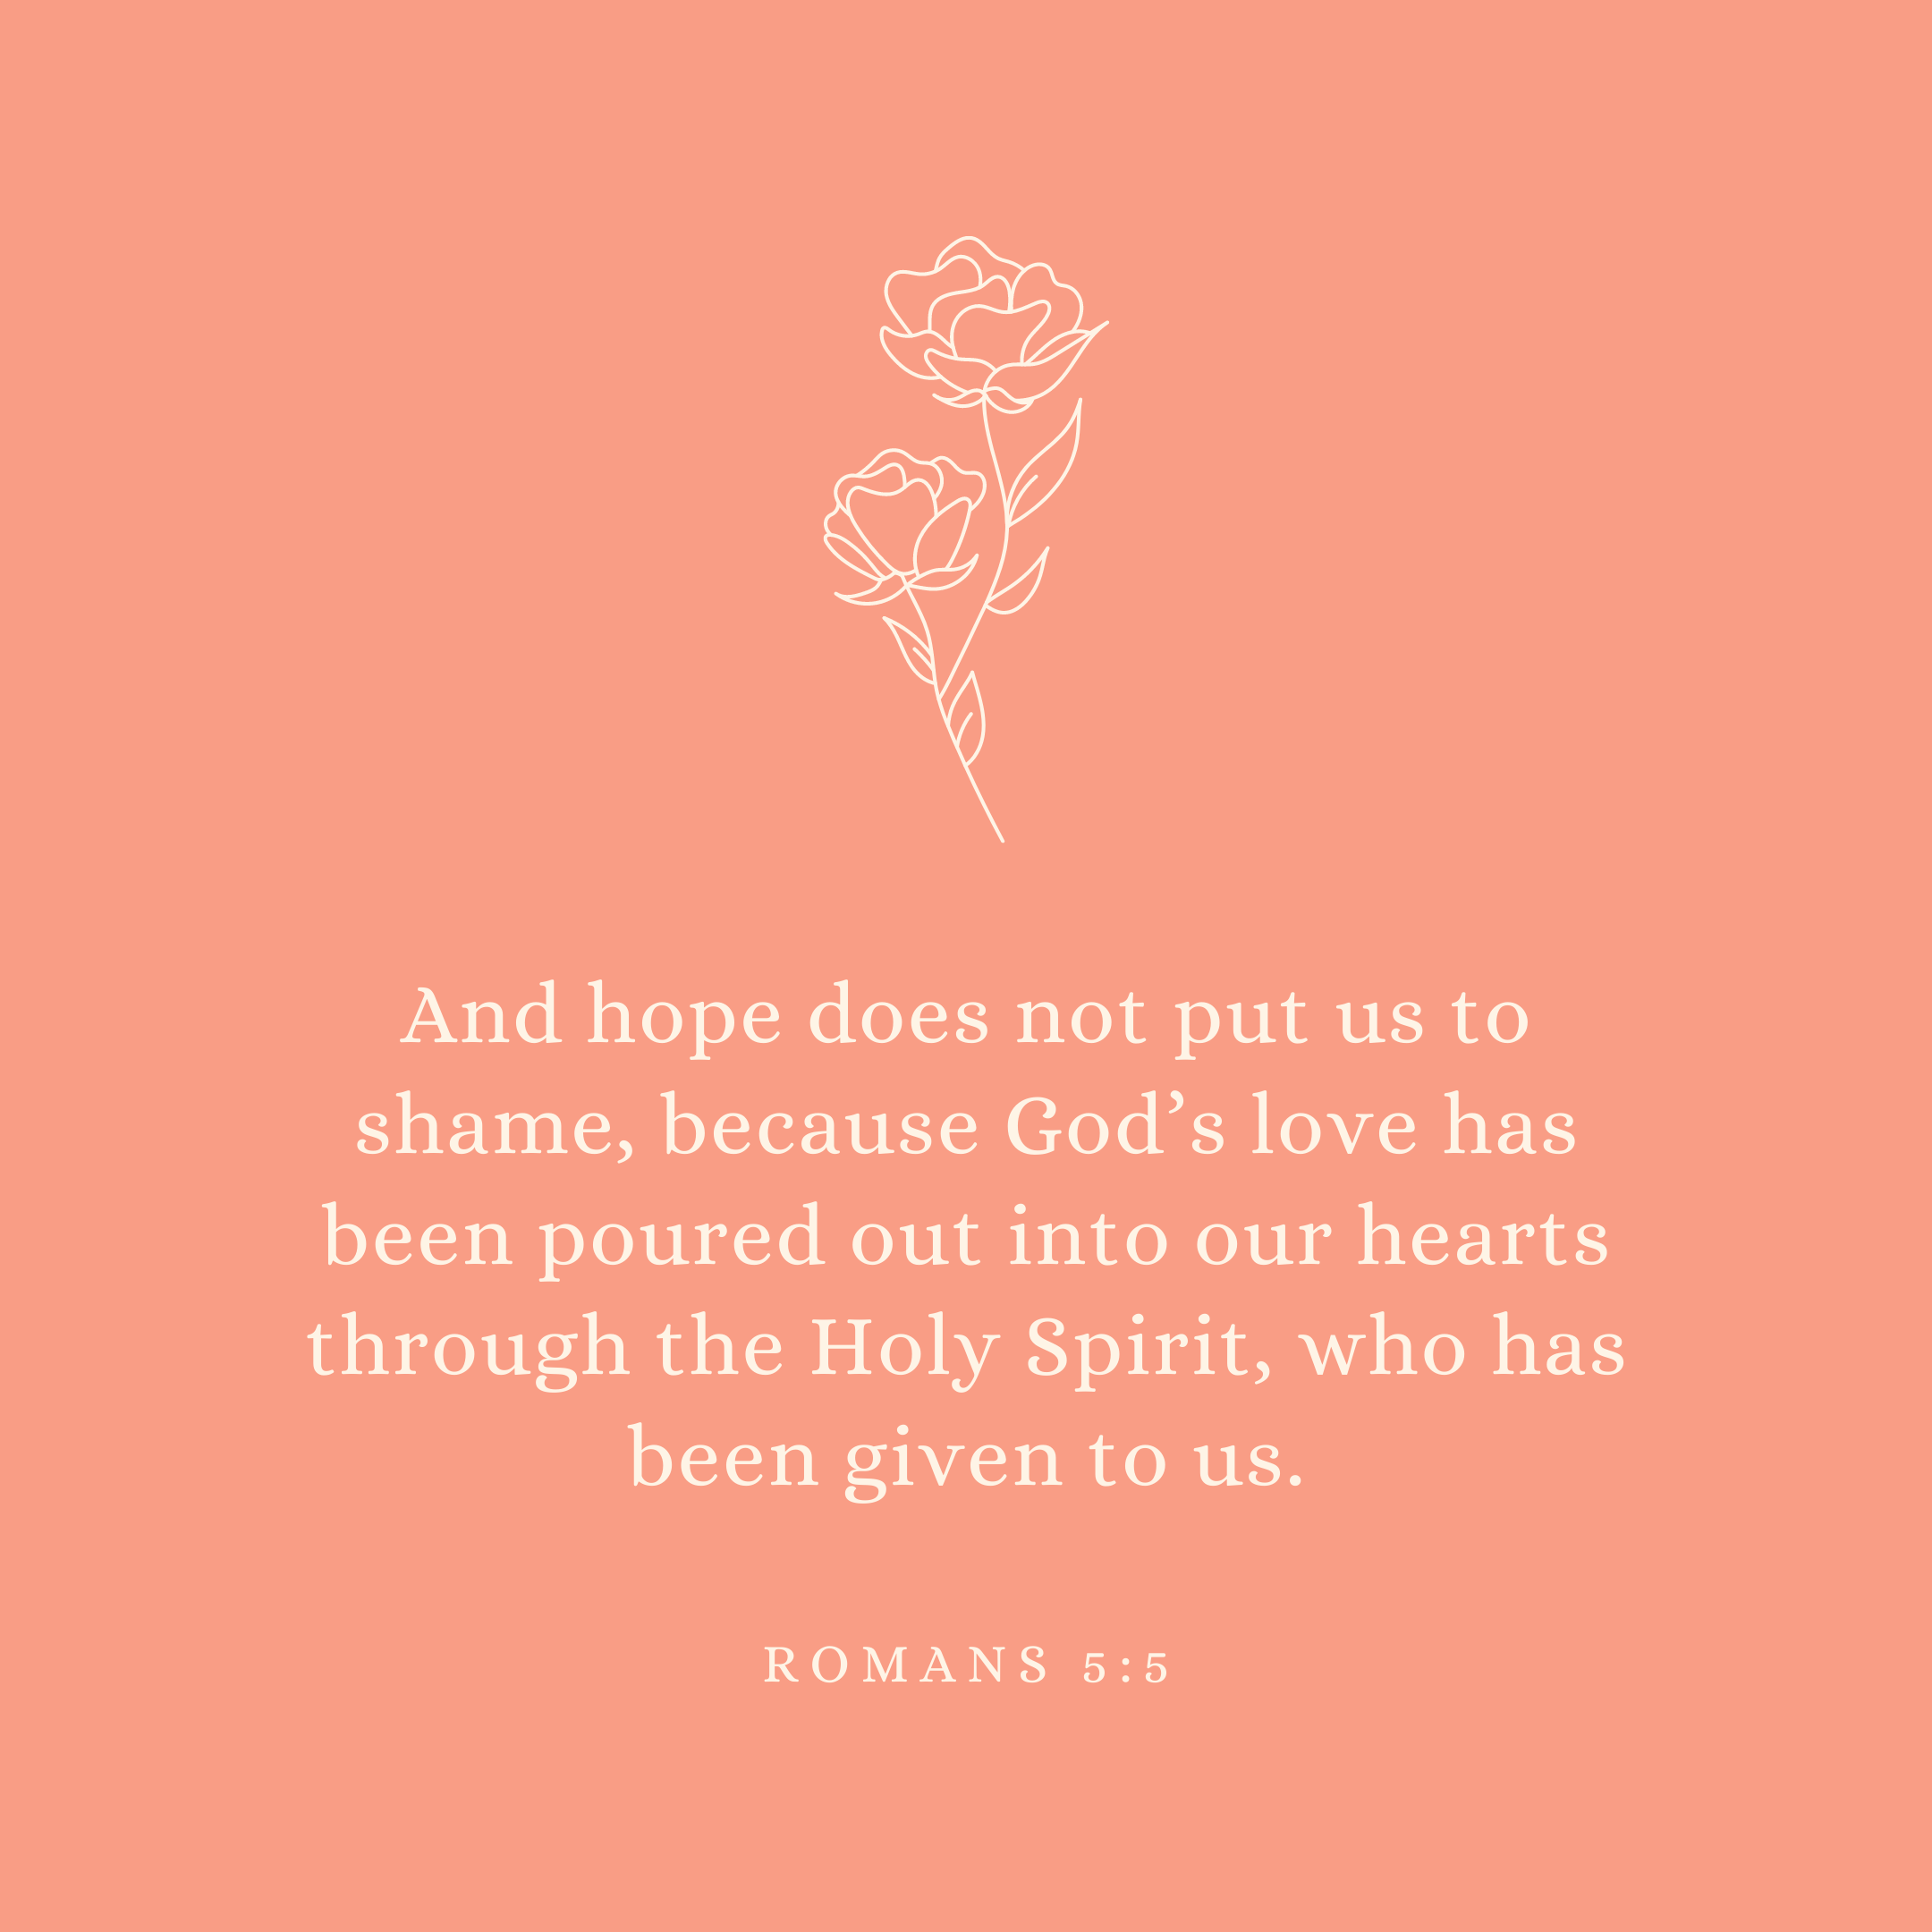 Romans 5:5 And hope does not put us to shame, because God's love has been poured out into our hearts through the Holy Spirit, who has been given to us.